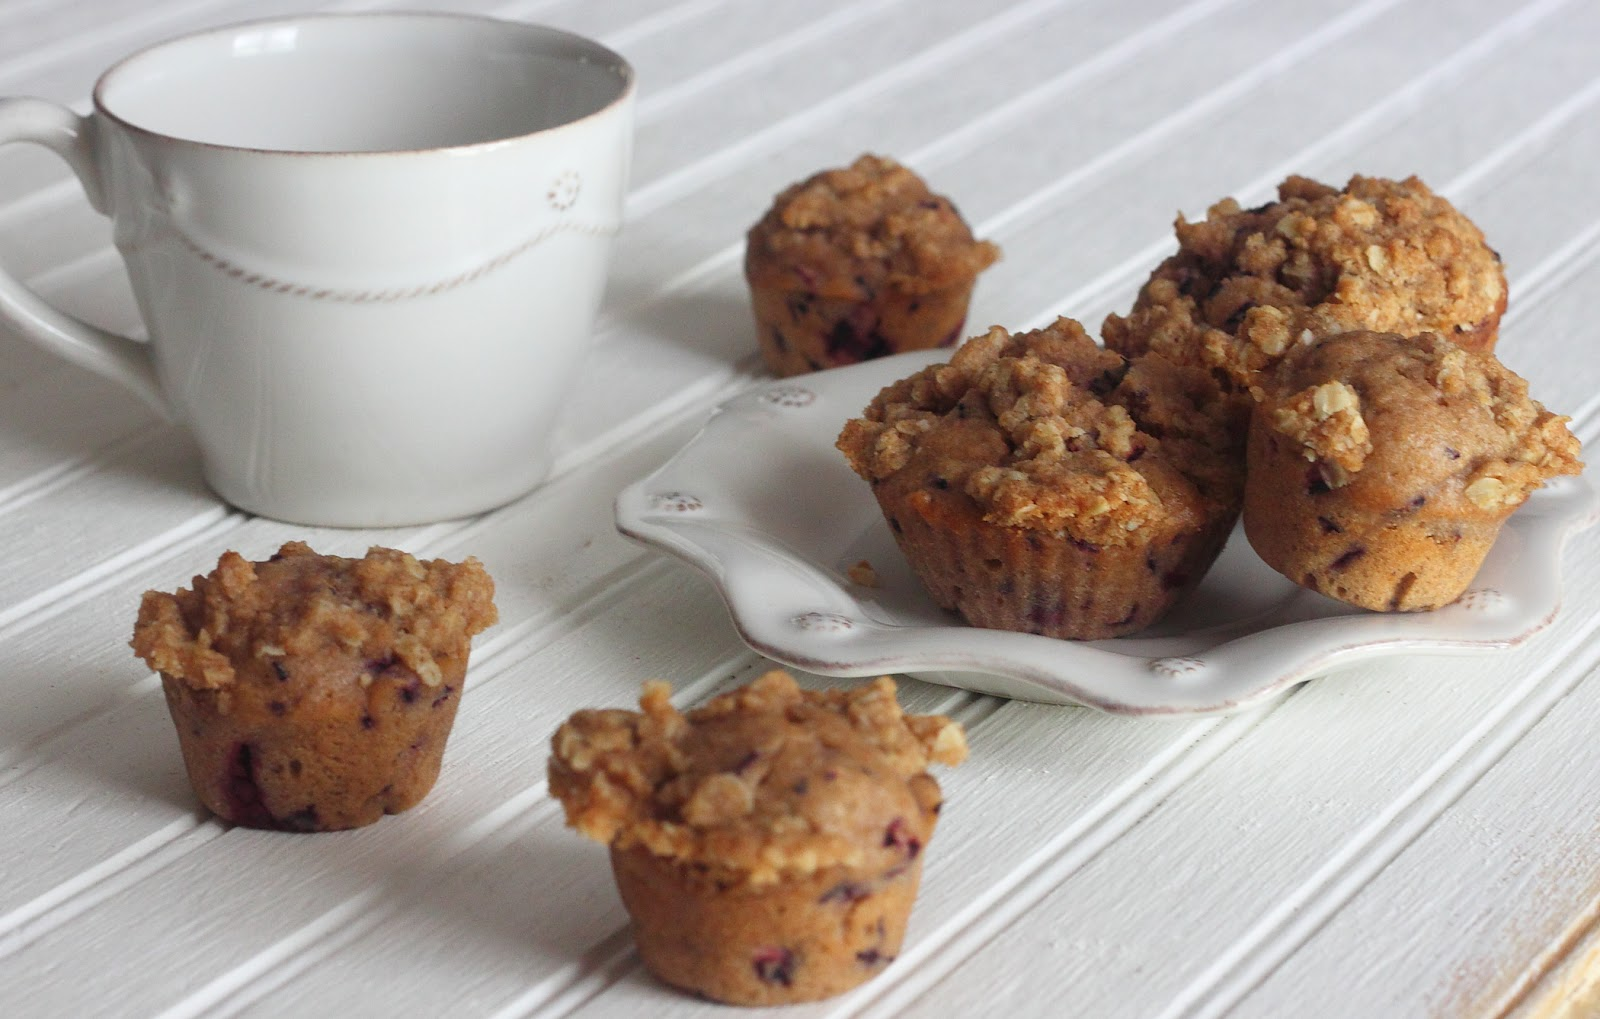 ... Kitchen: Whole Wheat Blueberry Muffins with Oat Streusel Crumb Topping